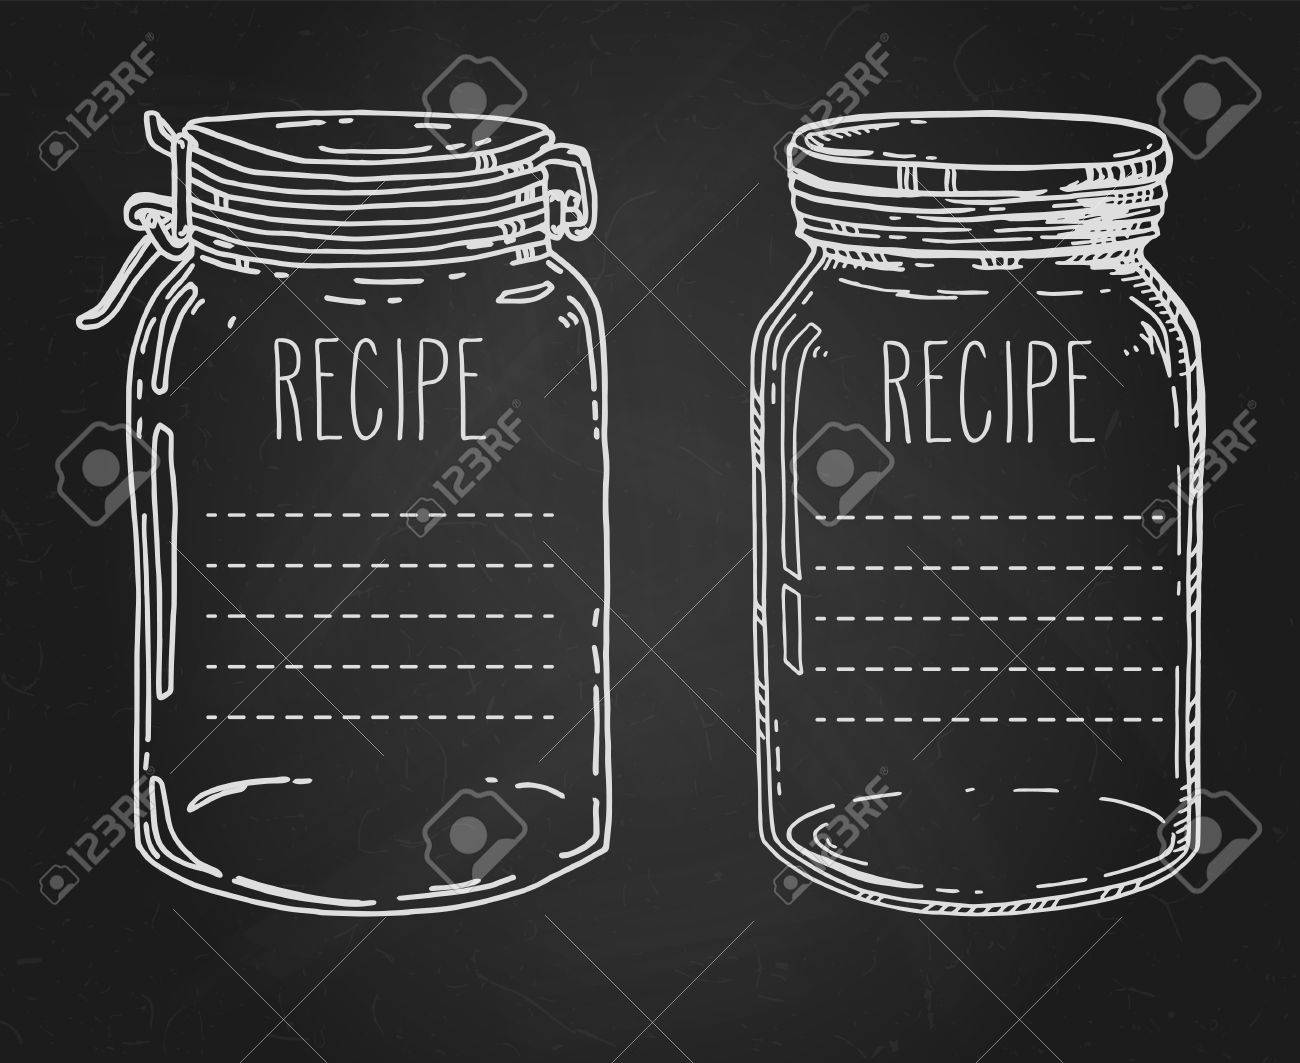 Recipe Templates. Vector Hand Drawn Illustration With Vintage ...